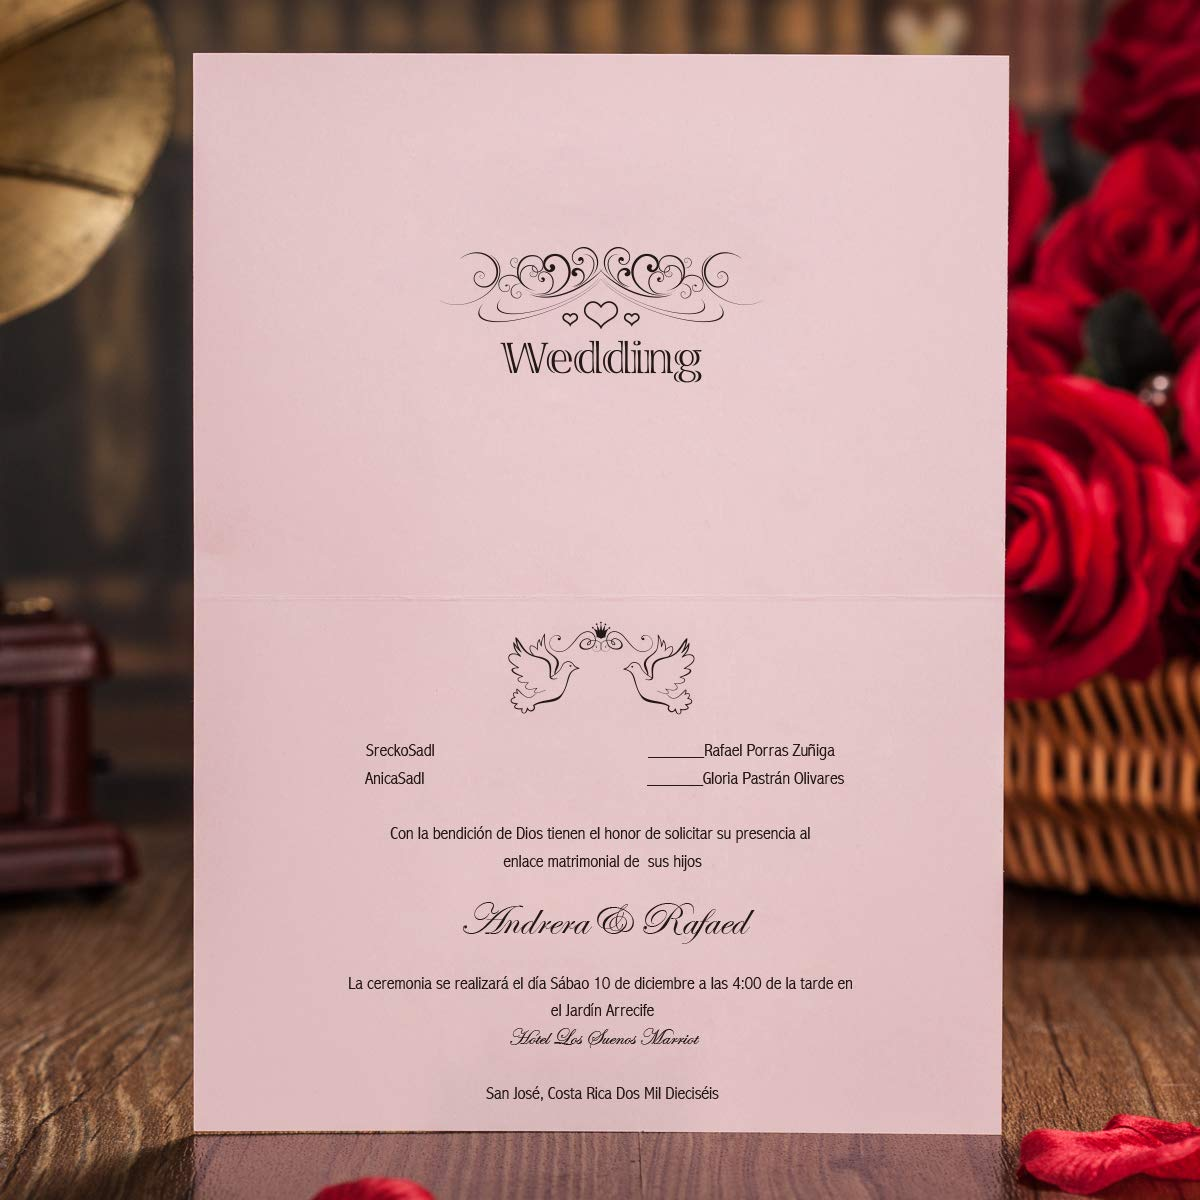 Manufacture Laser Cut Wedding Invitations Cards With Pink Ribbons For Wedding  Bridal Shower Engagement Birthday Graduation - Buy Engagement Invitation  Red Blue Cards,Luxury Butterfly Wedding Invitation Cards & Clubs Party, Invitation Birthday Cards